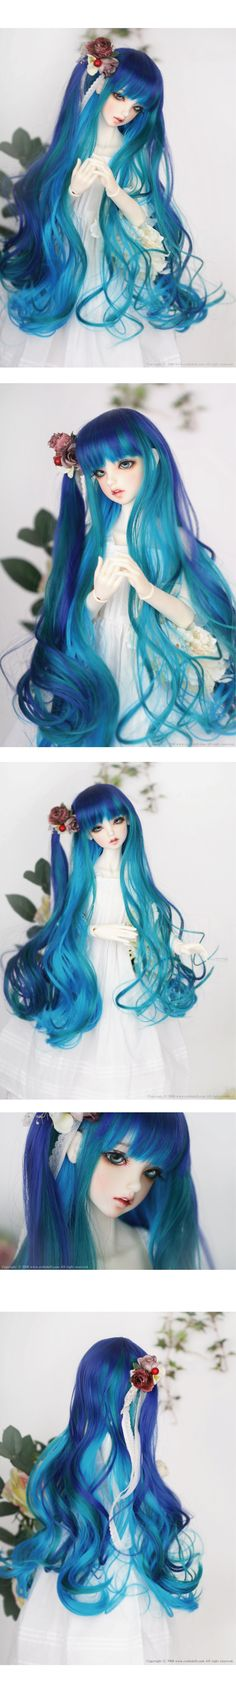 CROSS ¢Ó AMBITION - CROBIDOLL Hair inspiration  I want this wig in brunette for Hope (resin Ellowyne Wilde doll)